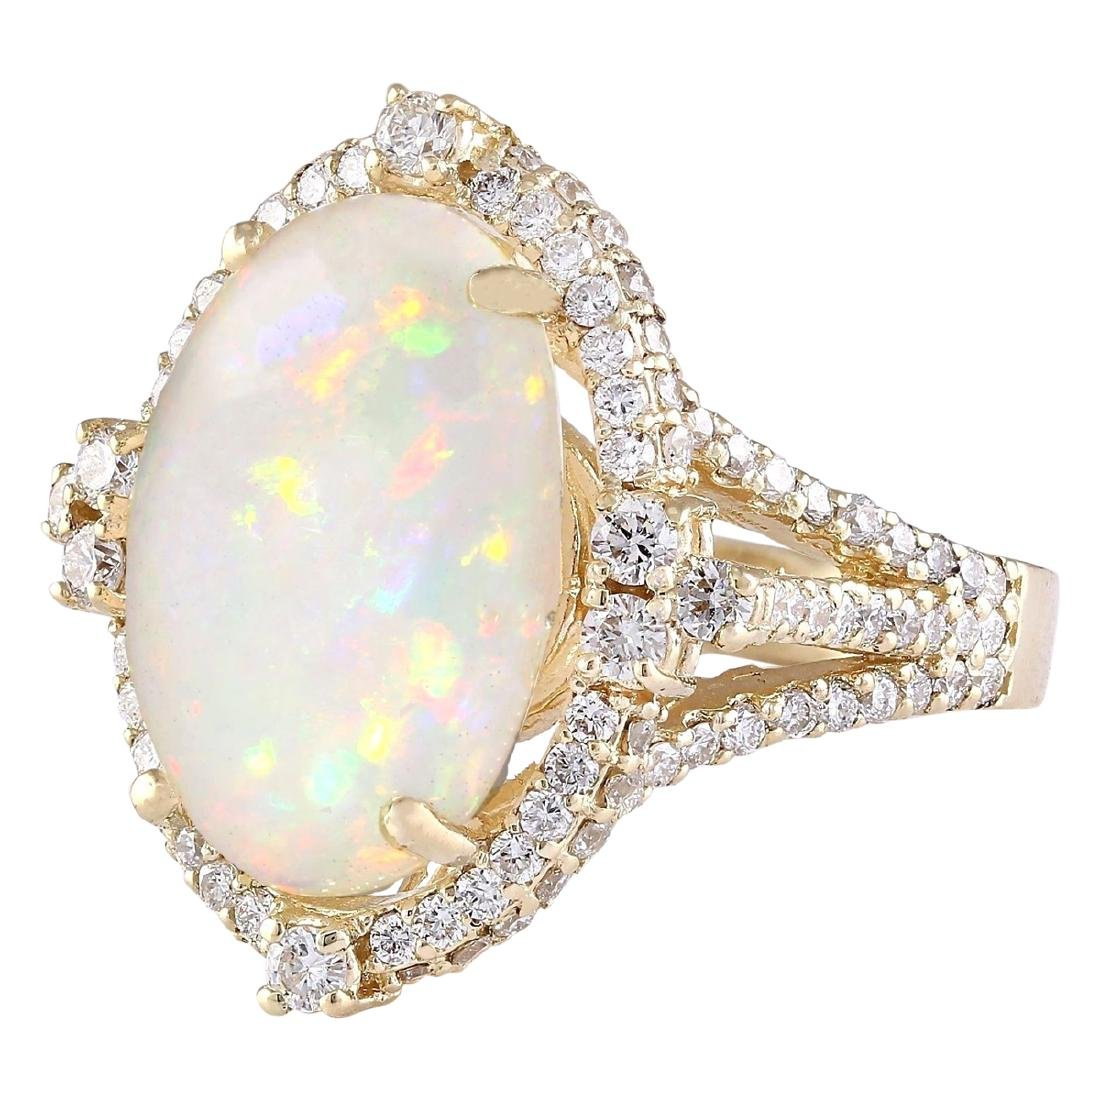 7.09 CTW Natural Opal And Diamond Ring In 18K Yellow - 2